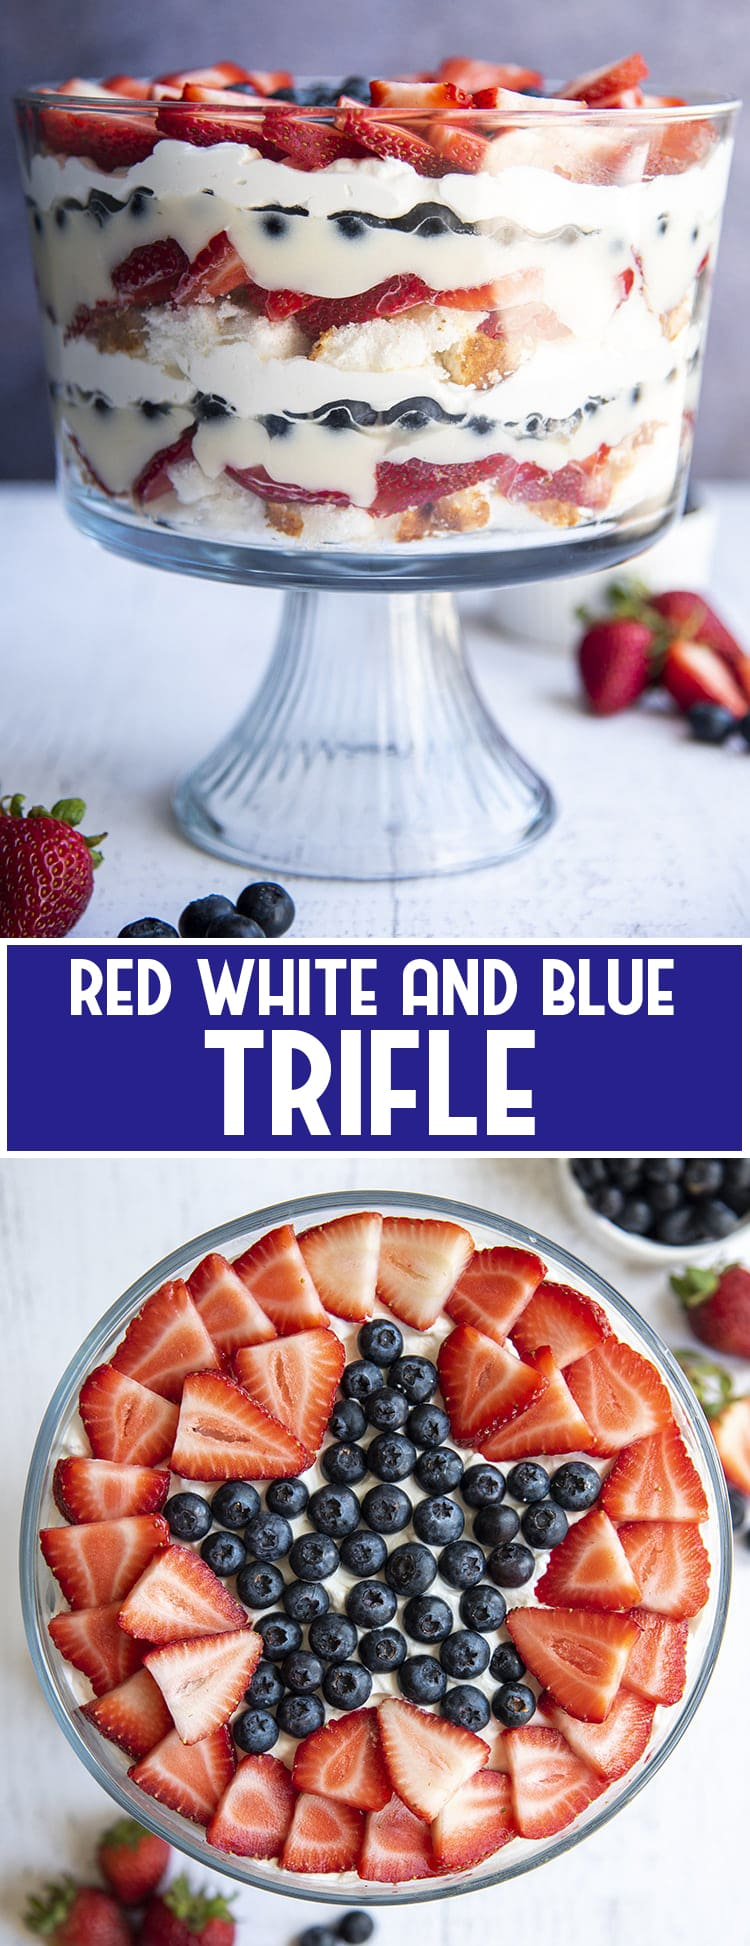 Fruit Trifle with layers of angel food cake, strawberries, blueberries, pudding, and whipped cream, with a star out of blueberries on top, made into a collage of two photos with text overlay